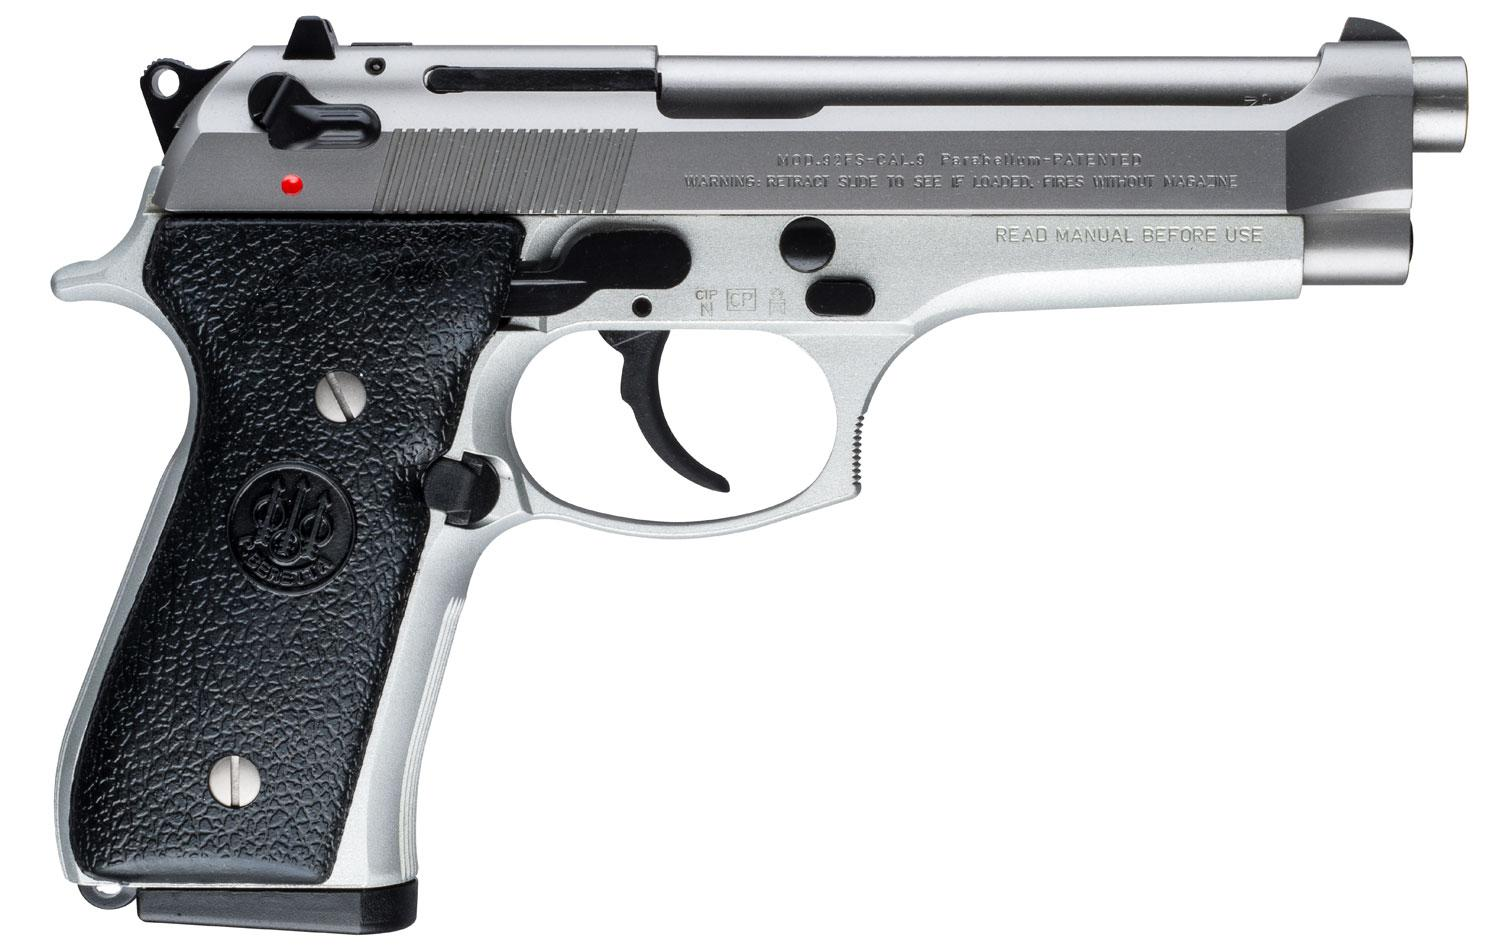 Beretta 92 FS Semi-Auto Pistol JS92F520, 9mm, 4 9 inch, Black Synthetic  Grips, Stainless Steel Finish, 1 - Able Ammo